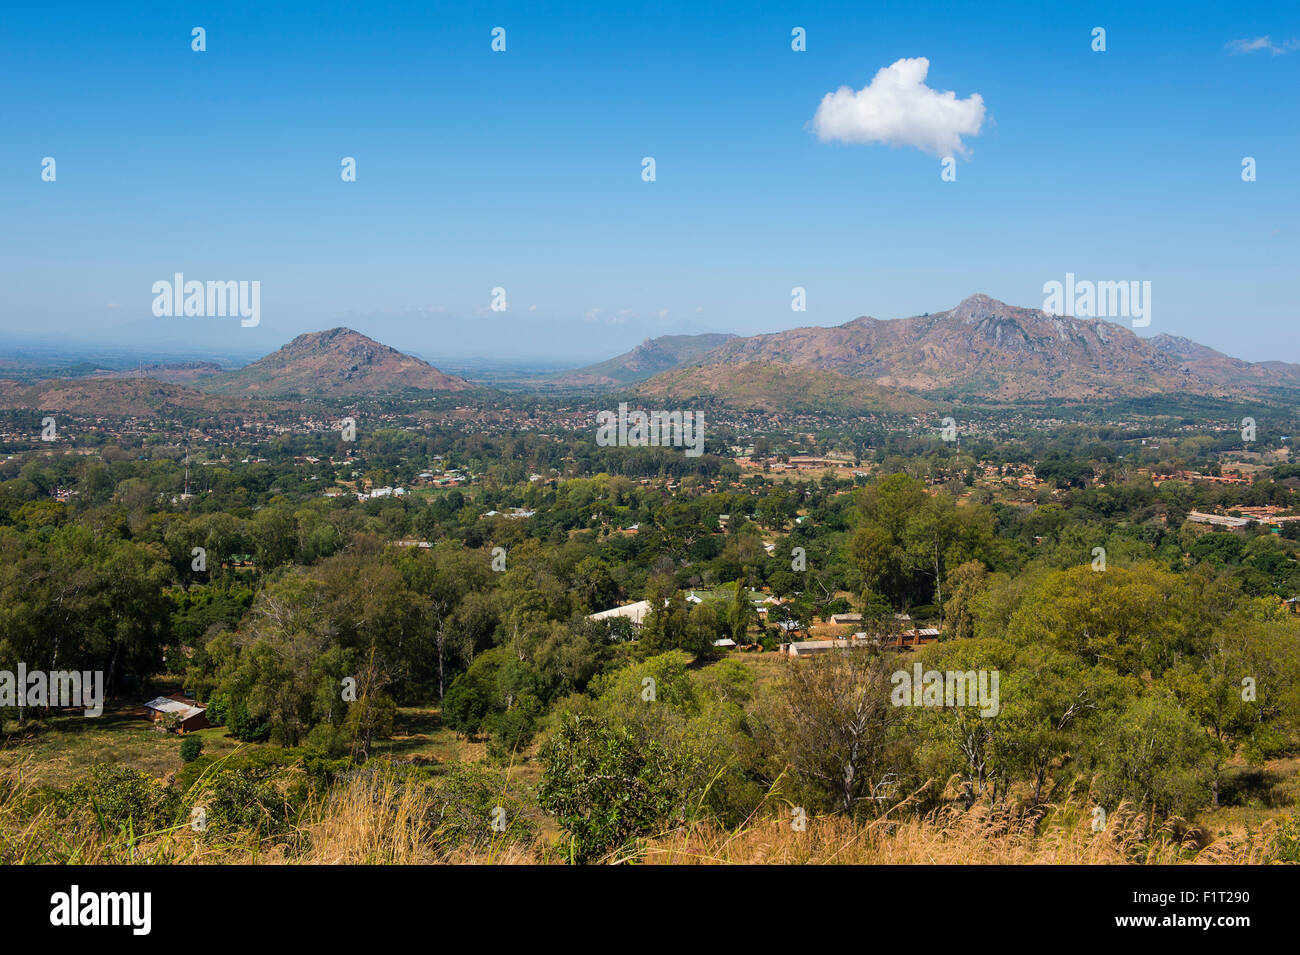 View over Zomba from the Zomba Plateau, Malawi, Africa - Stock Image